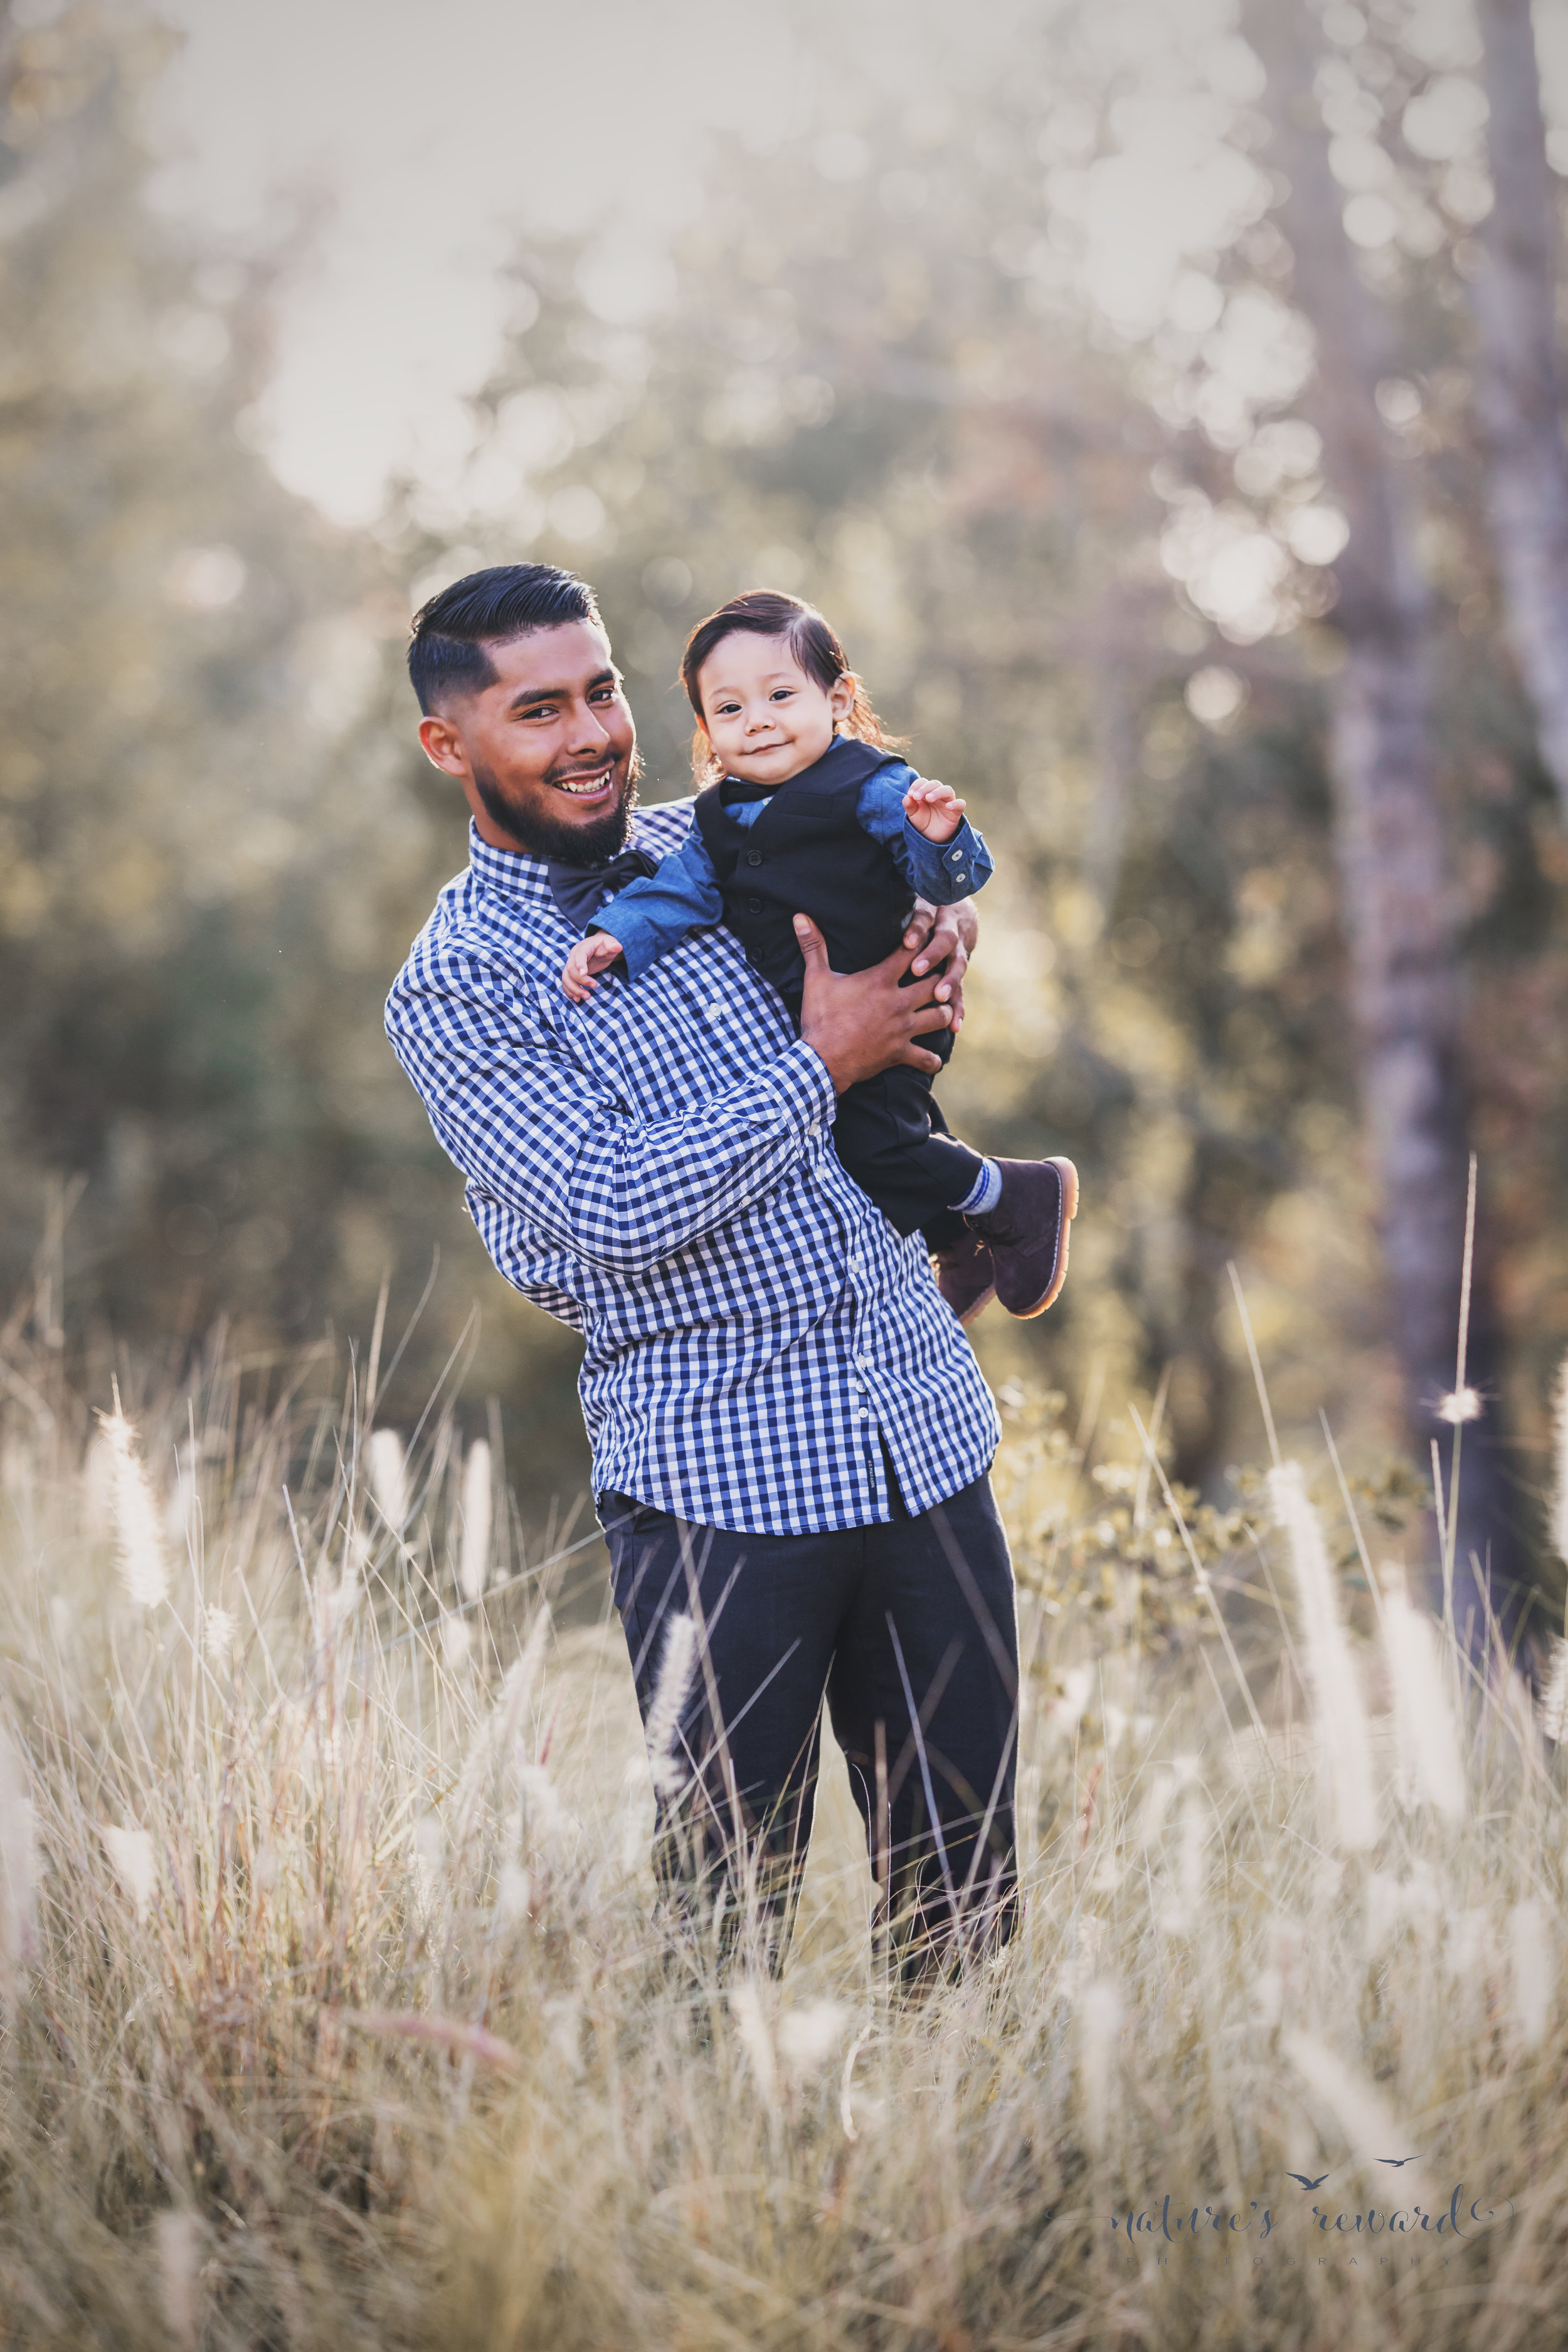 Father and son portrait by nature's reward photography